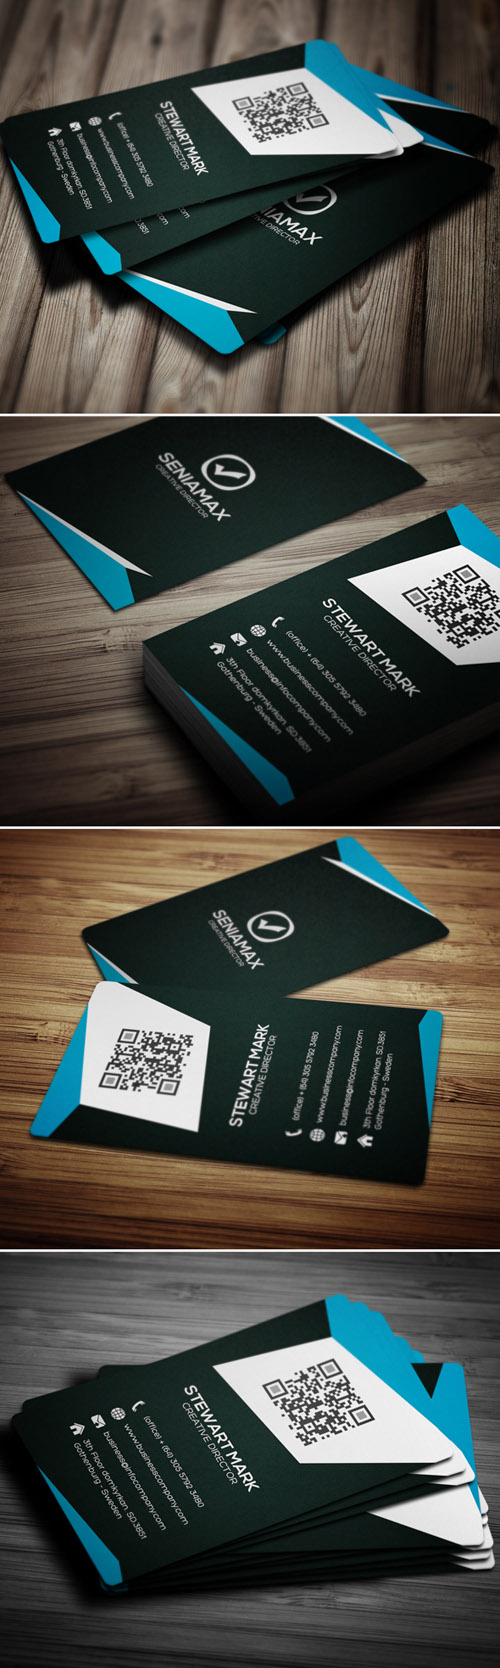 Professional Business Cards Design-18